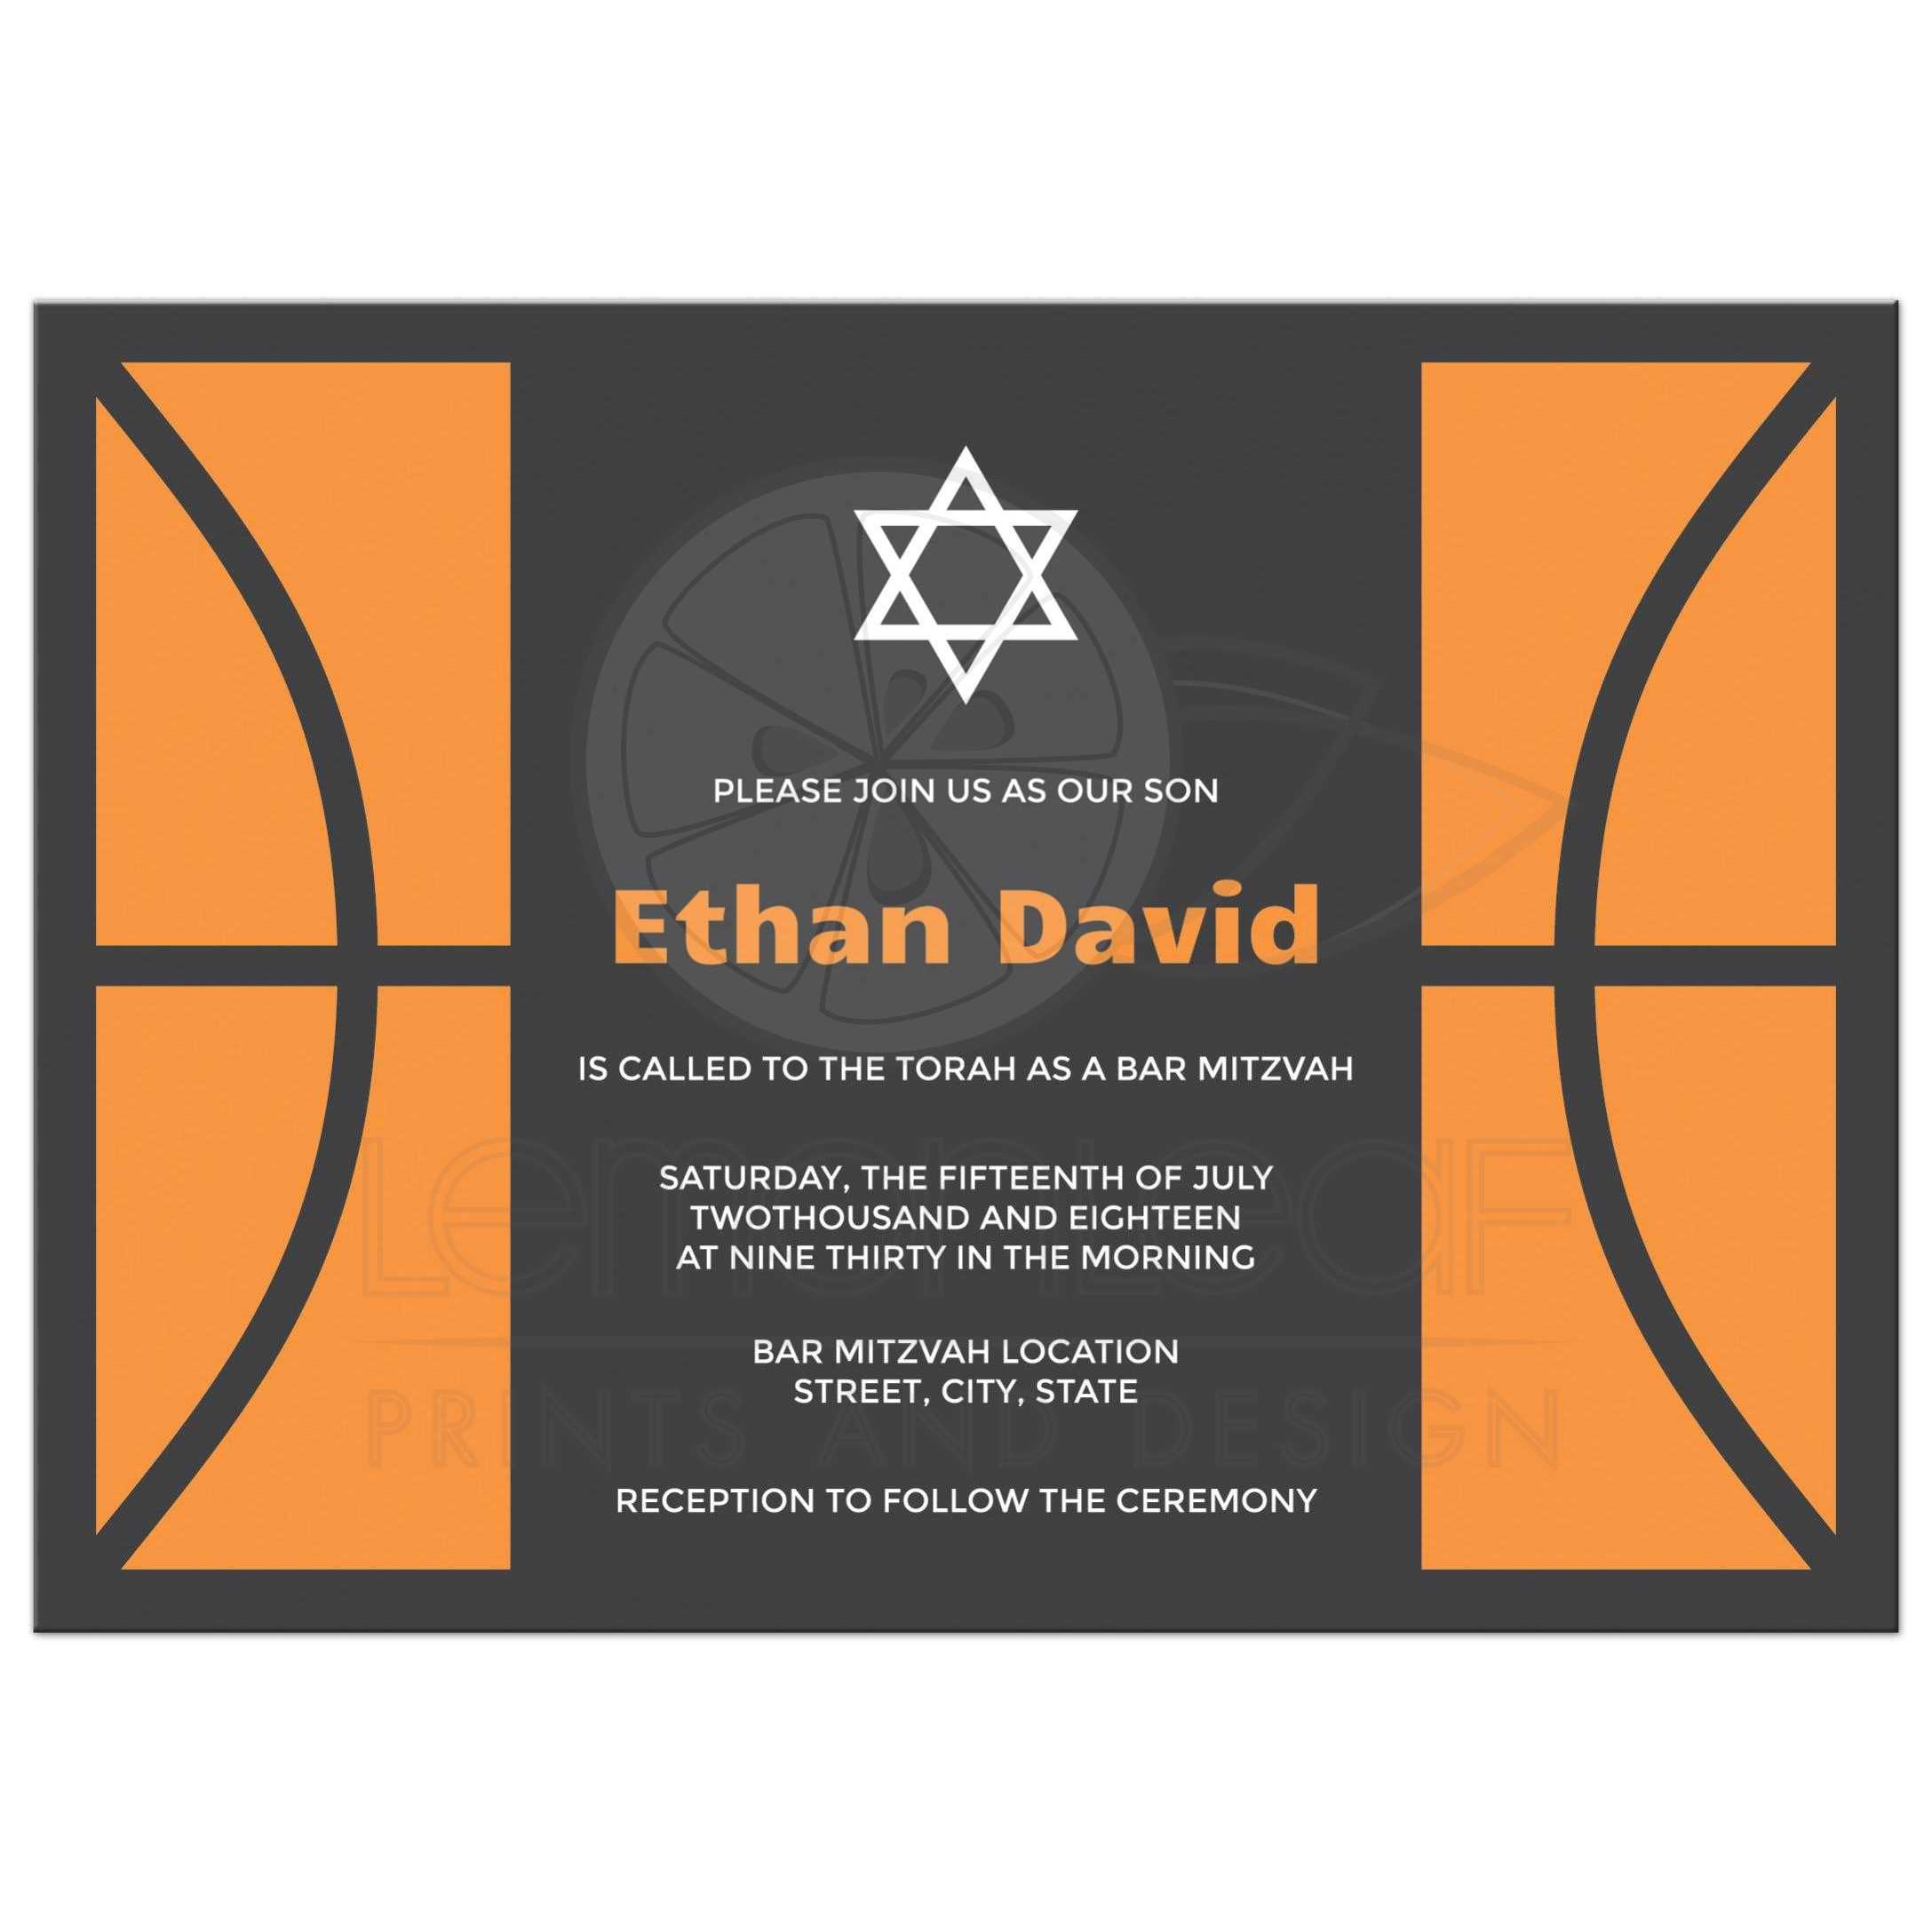 Basketball bar mitzvah invitation Bold and modern design in orange